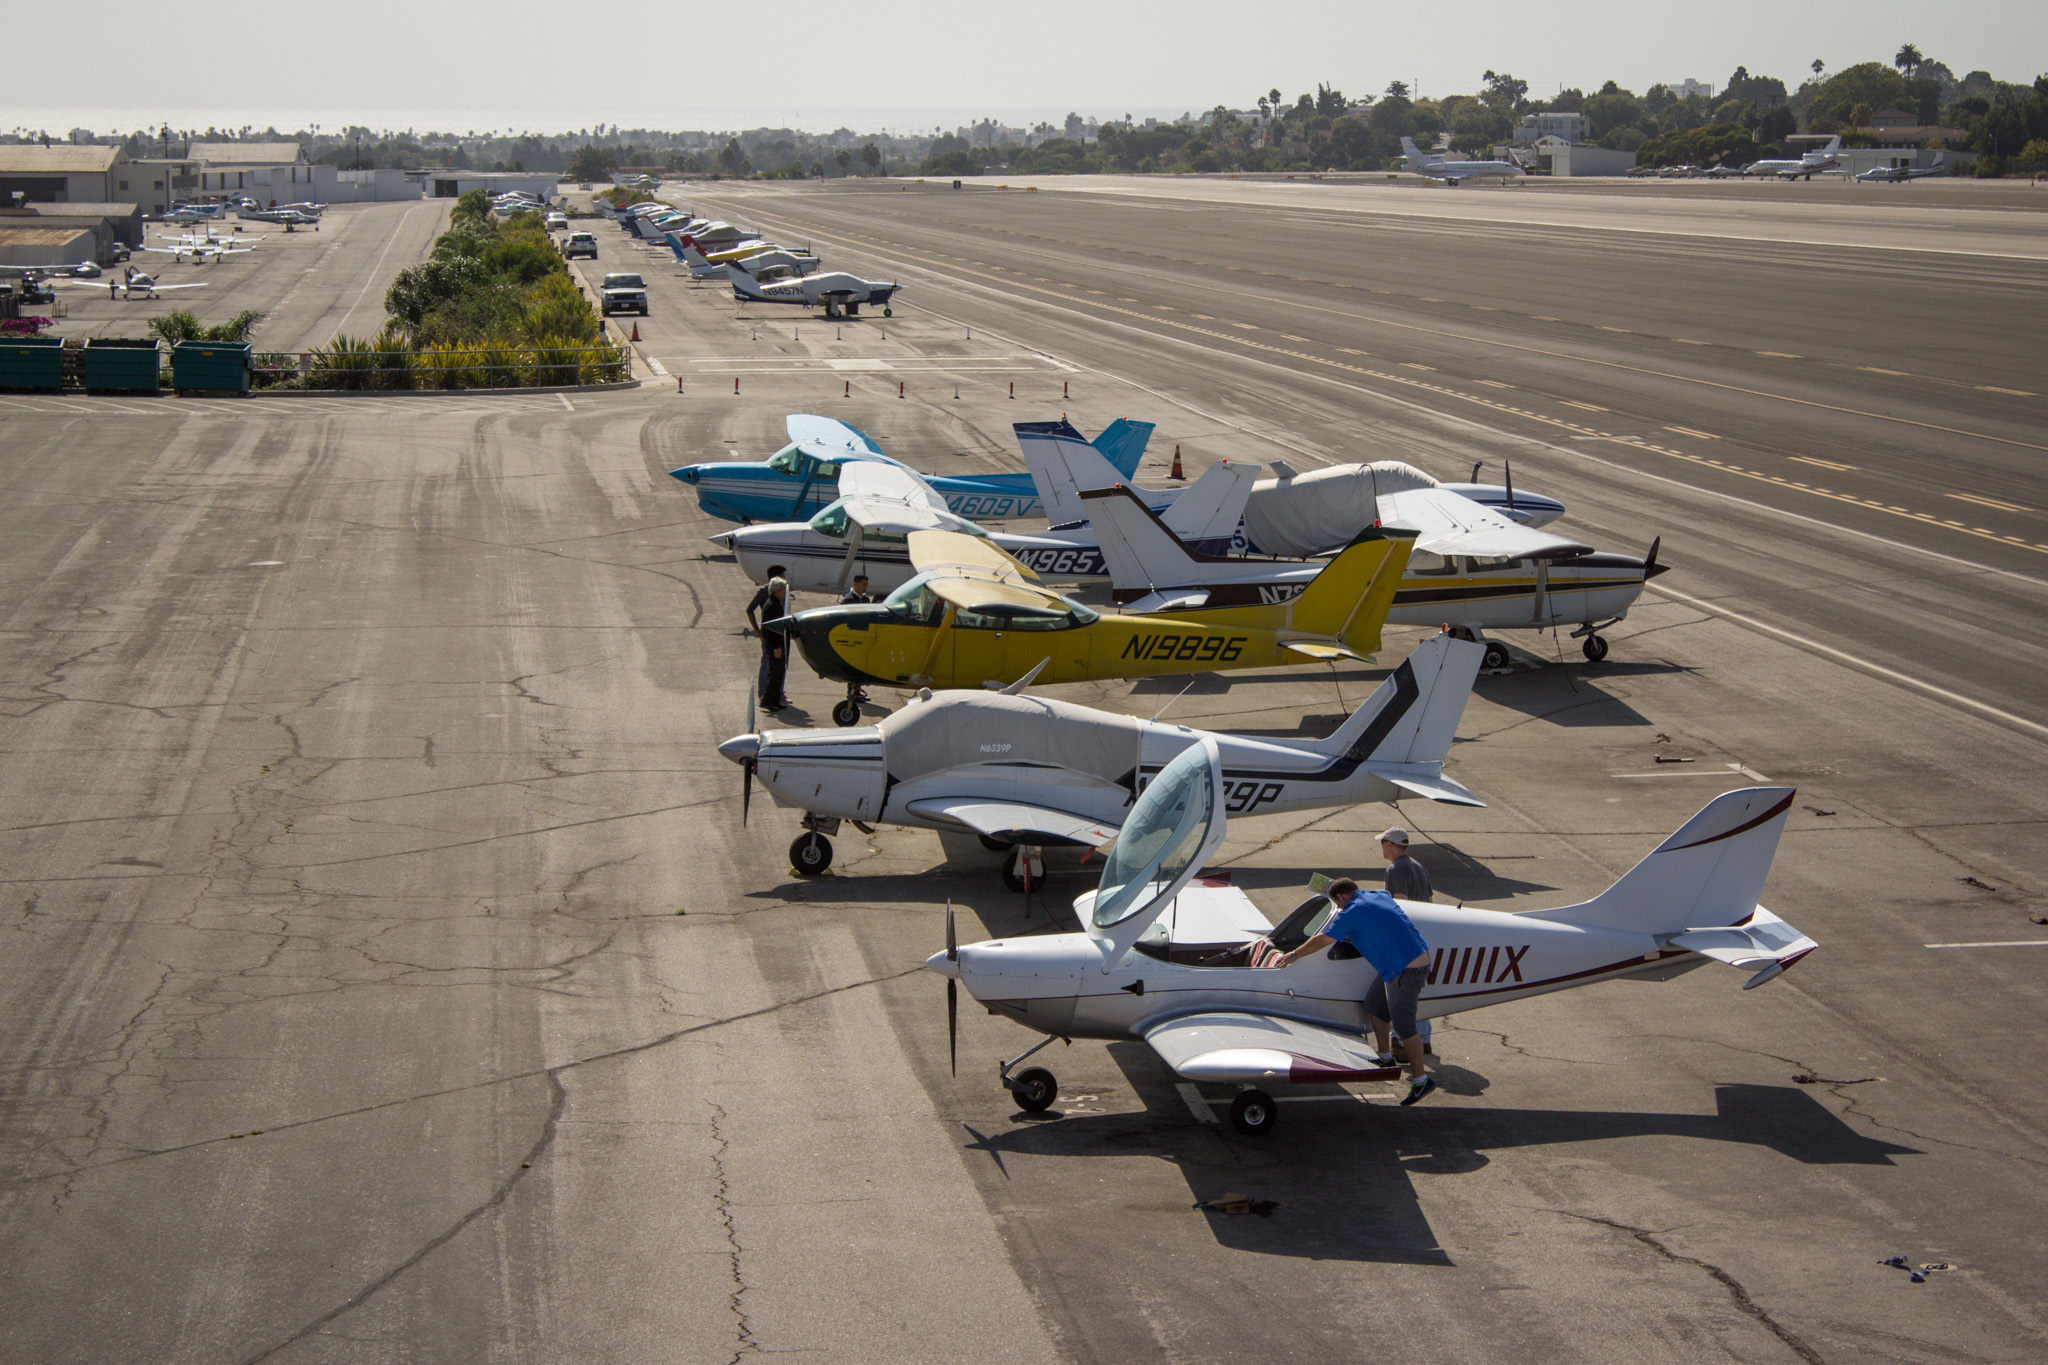 Santa Monica Airport observation deck.